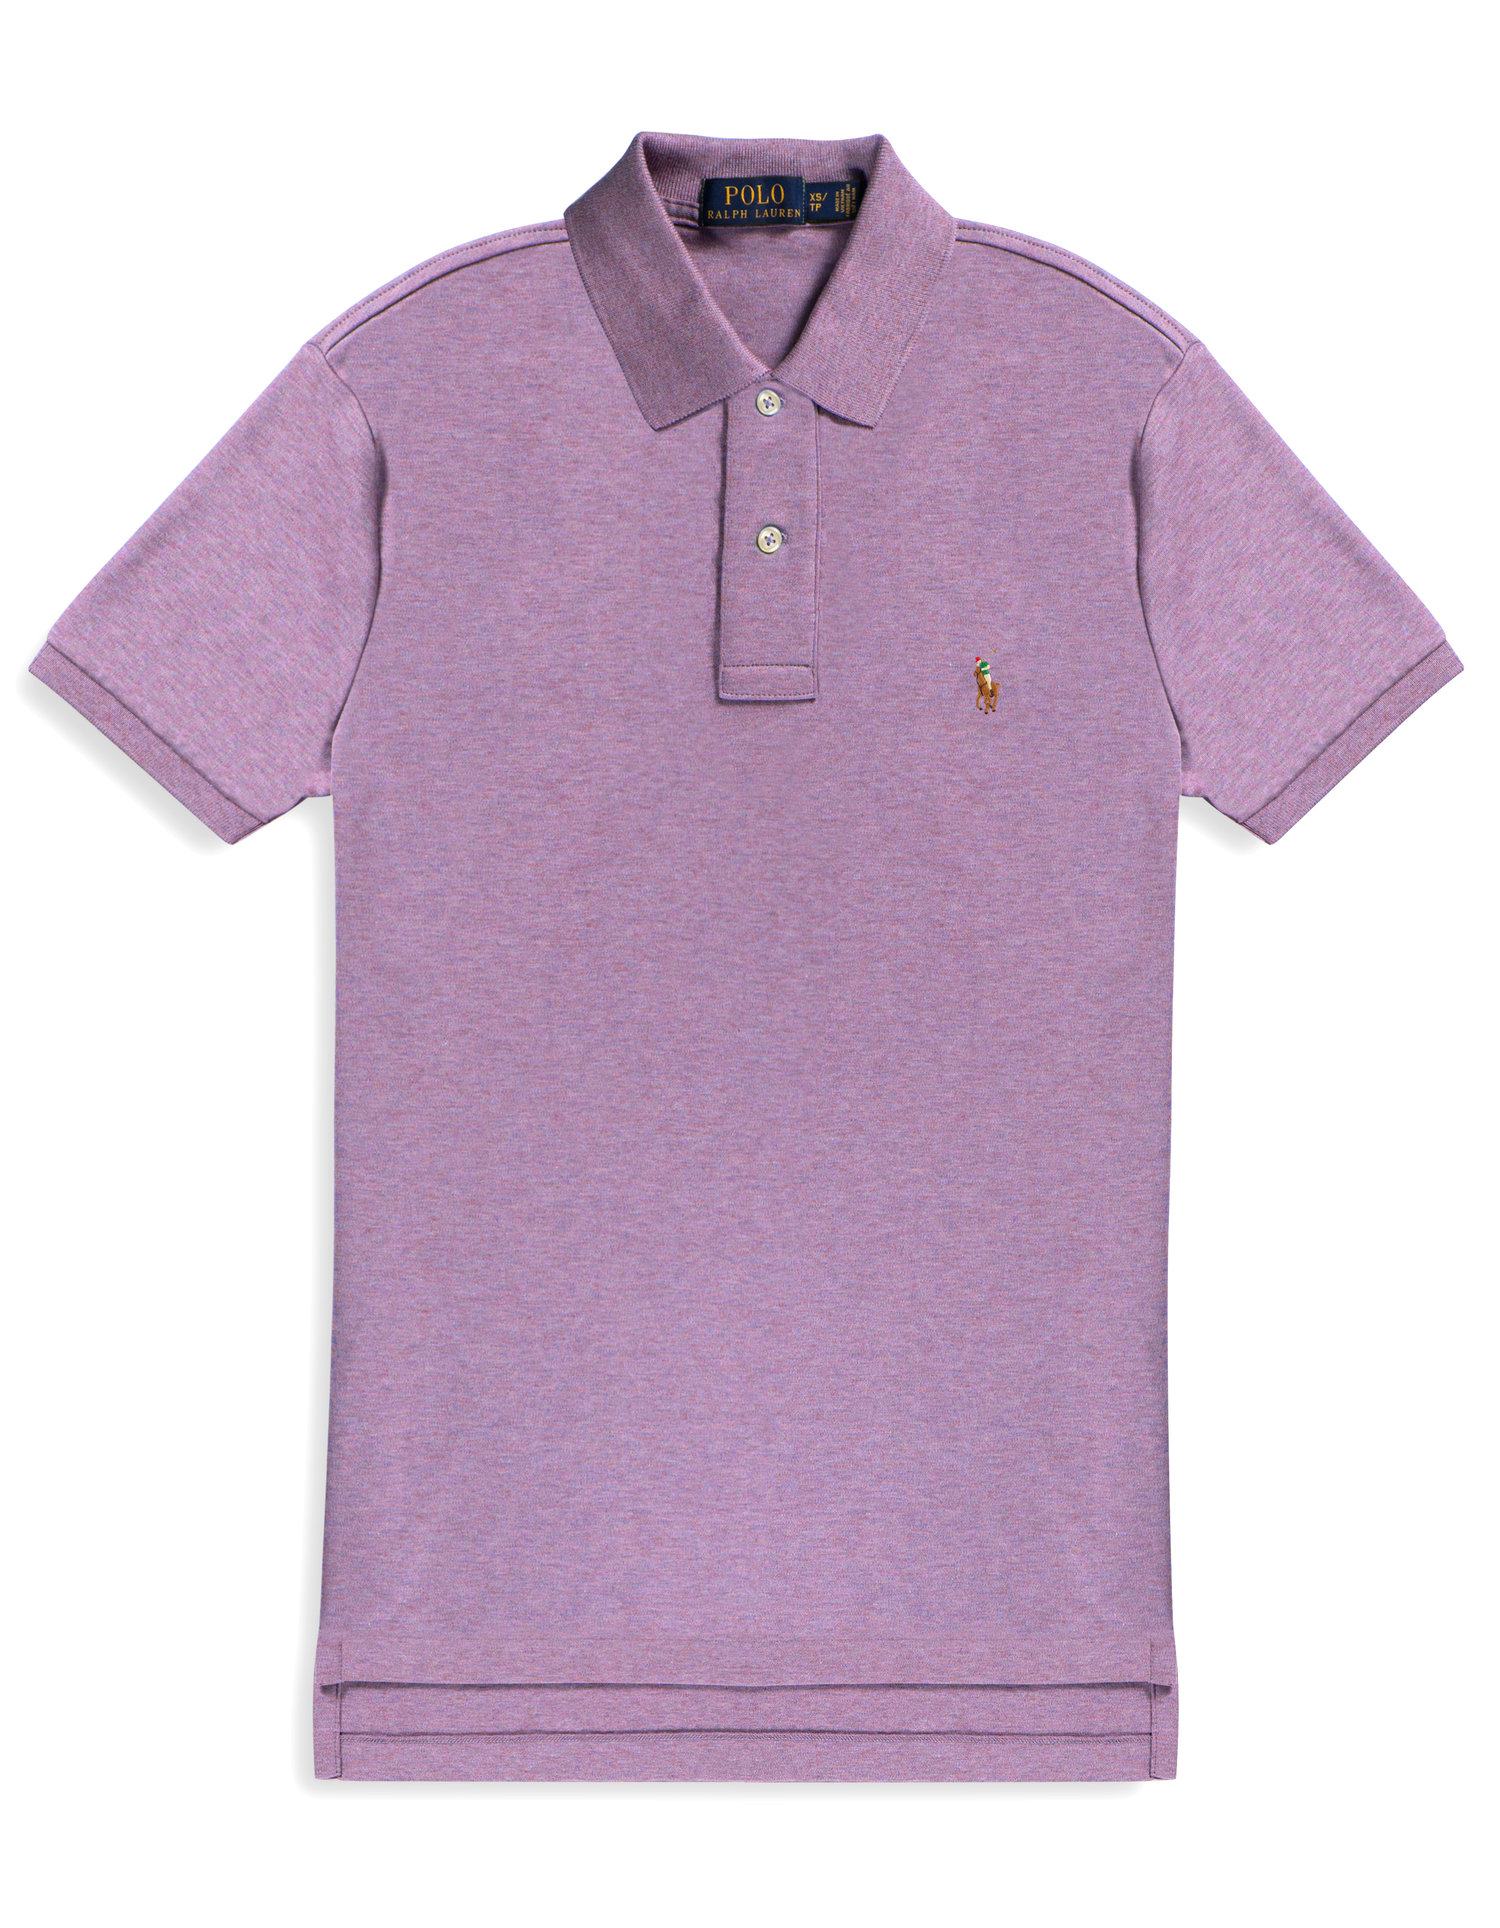 af2a875ed POLO RALPH LAUREN Classic-Fit Mesh Polo Shirt Pastel Purple (903912) —  GROONO S